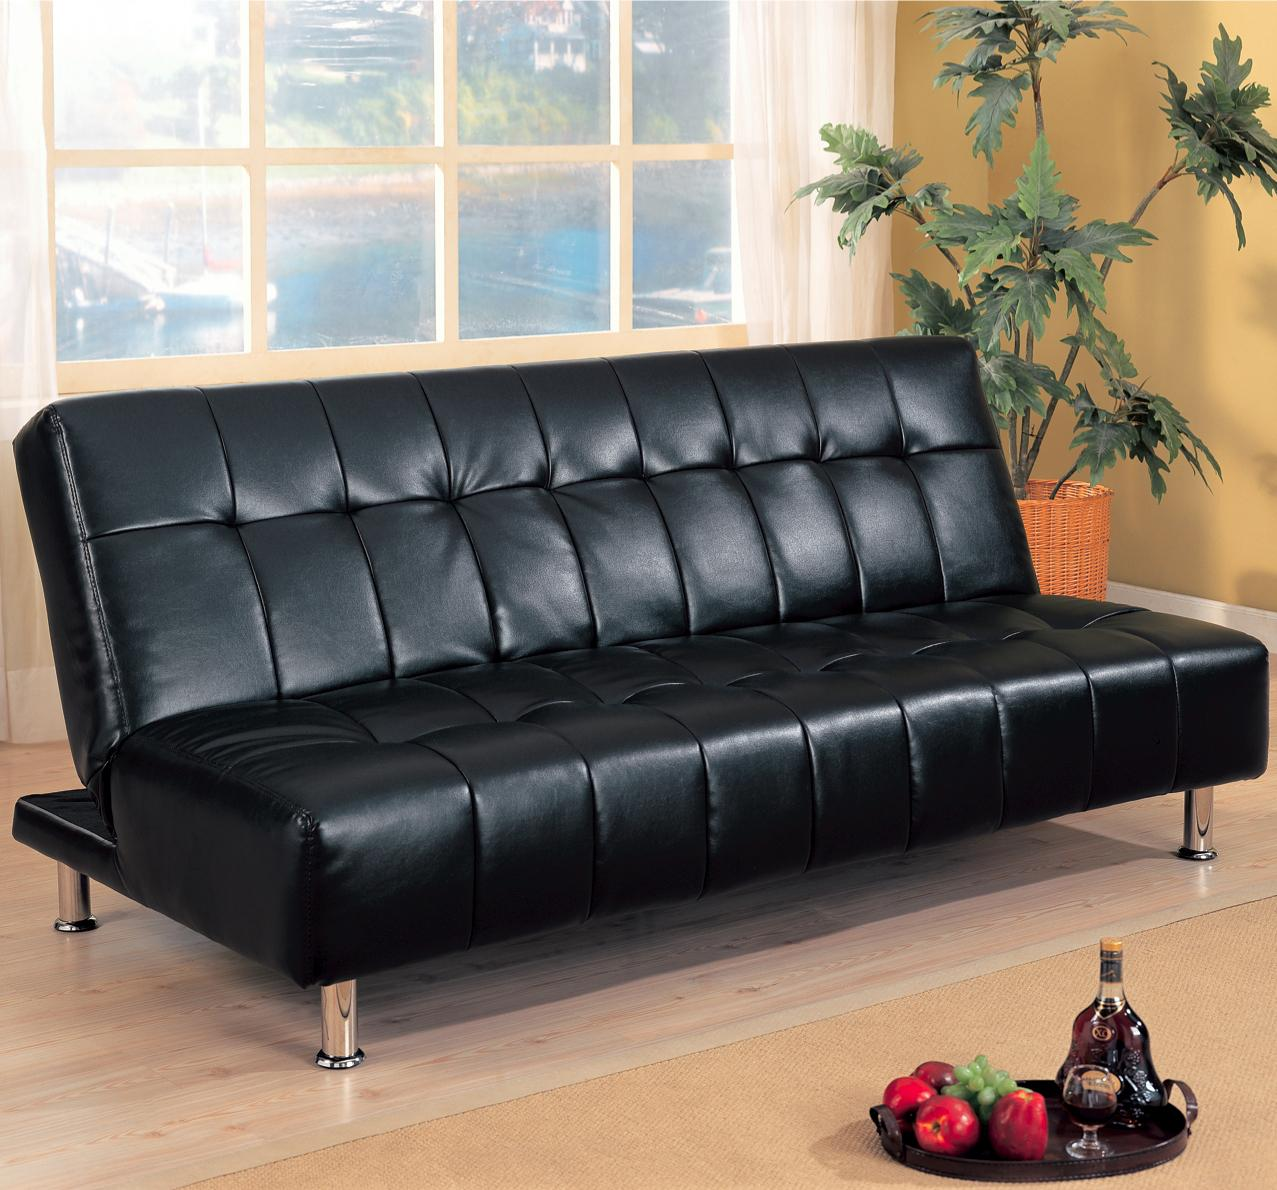 Faux Leather Black Armless Convertible Sofa Bed